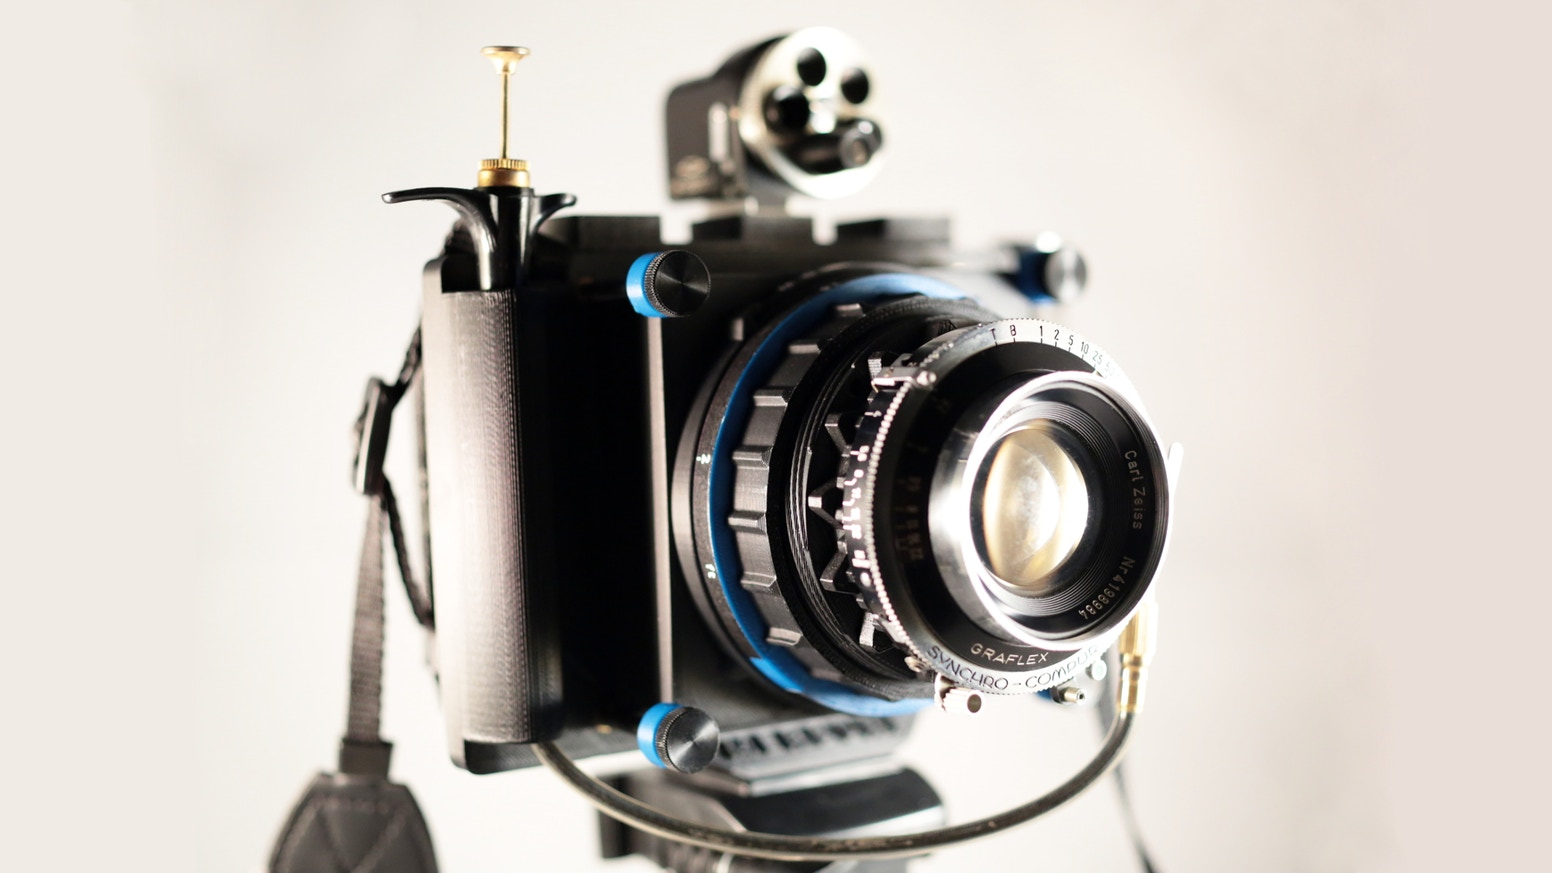 A modular, open camera system capable of shooting any format (medium and large format film, digital, Instax...) and using any lens.